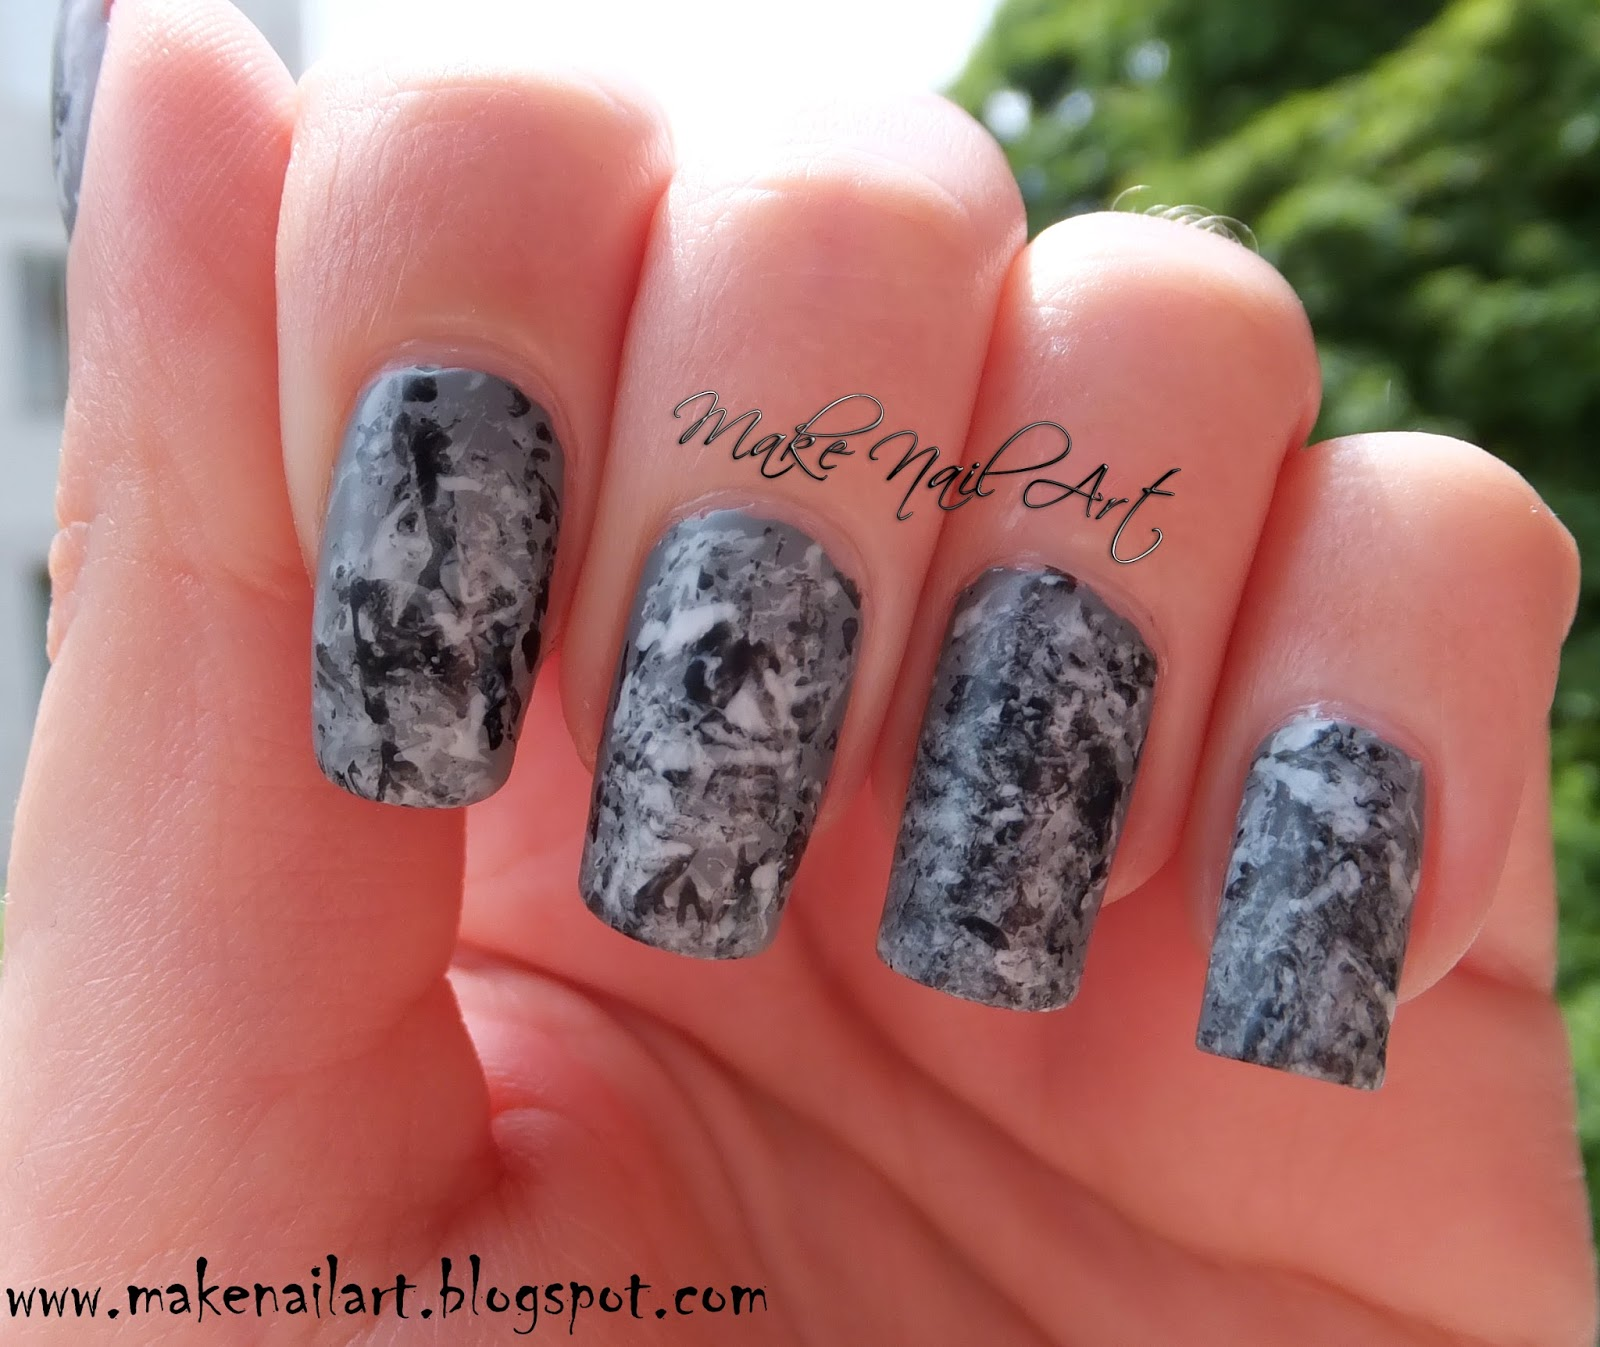 These Stone Marble Nails Are Perfect For Everyday And Any Occasion This Design Is Very Unique Interesting The Final Result Different Every Time